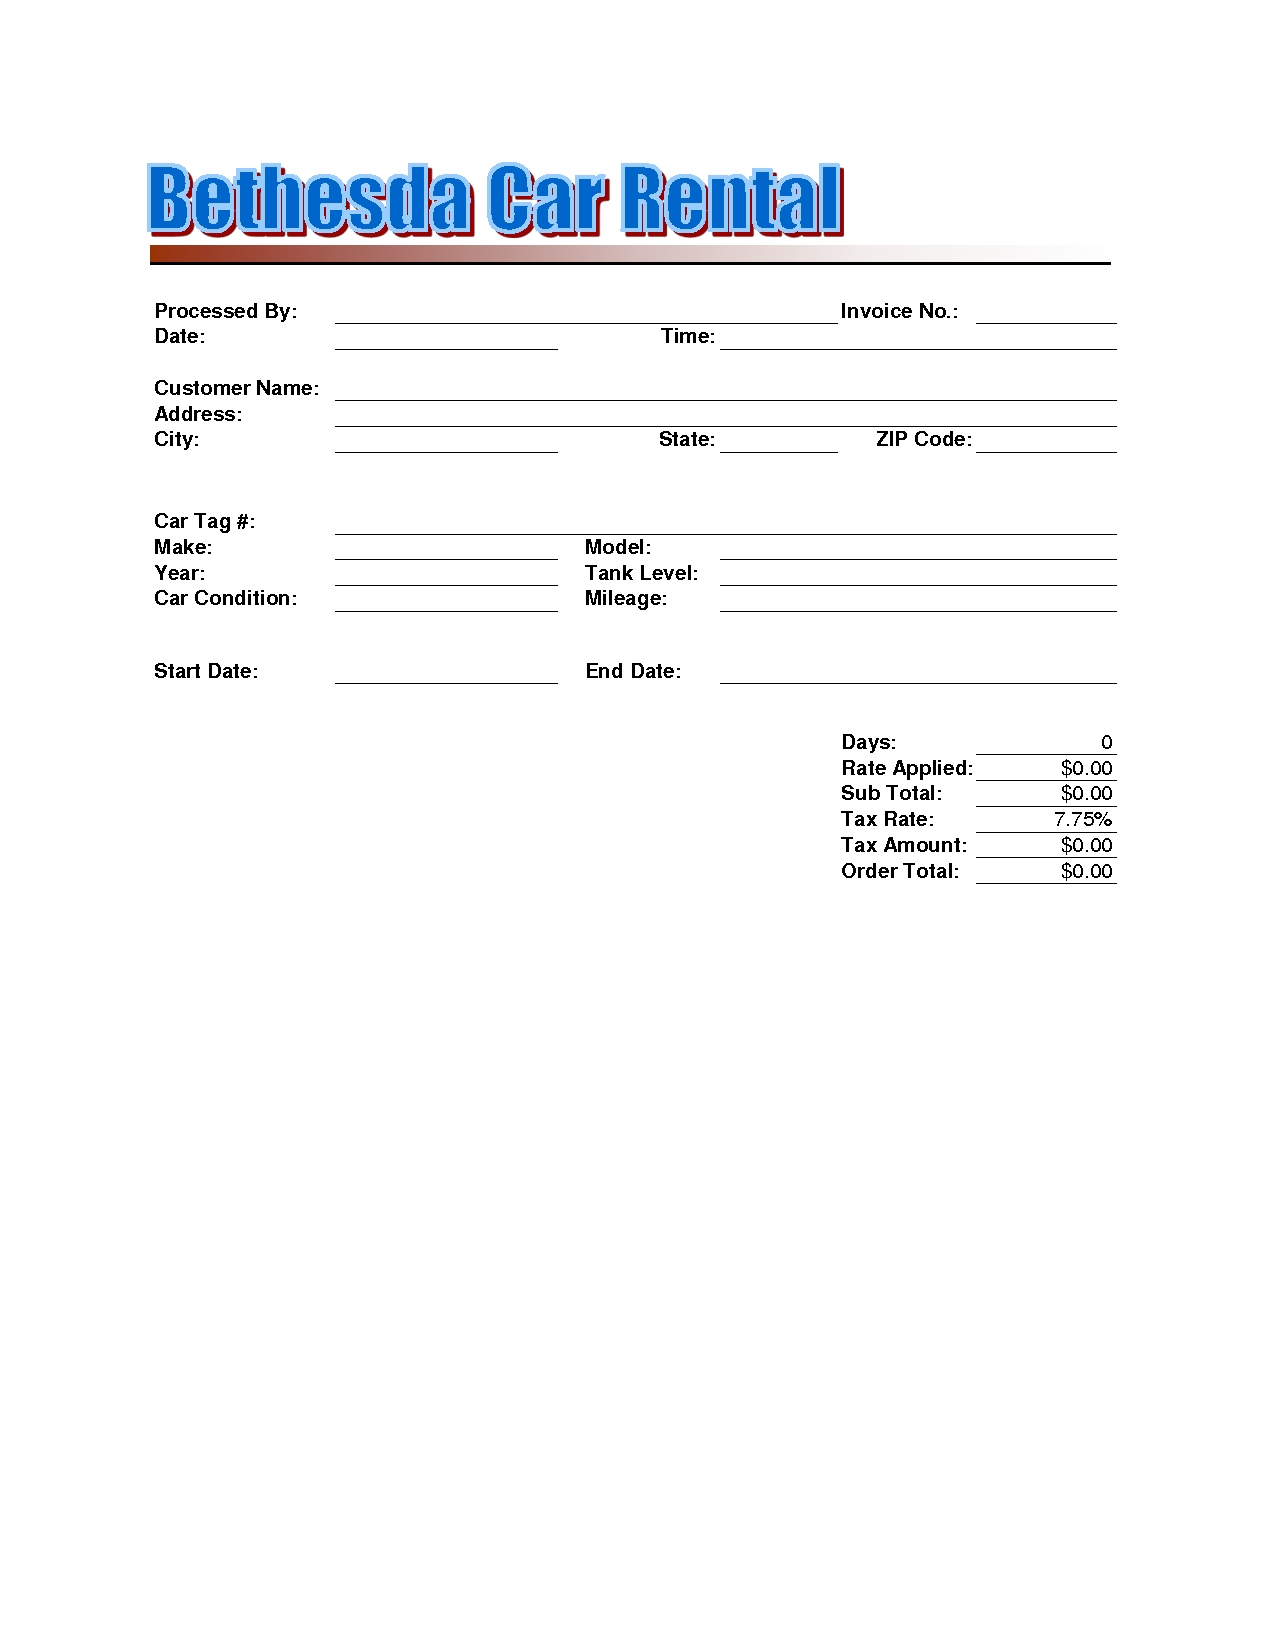 Car rental invoice sample 19 best photos of rent a template